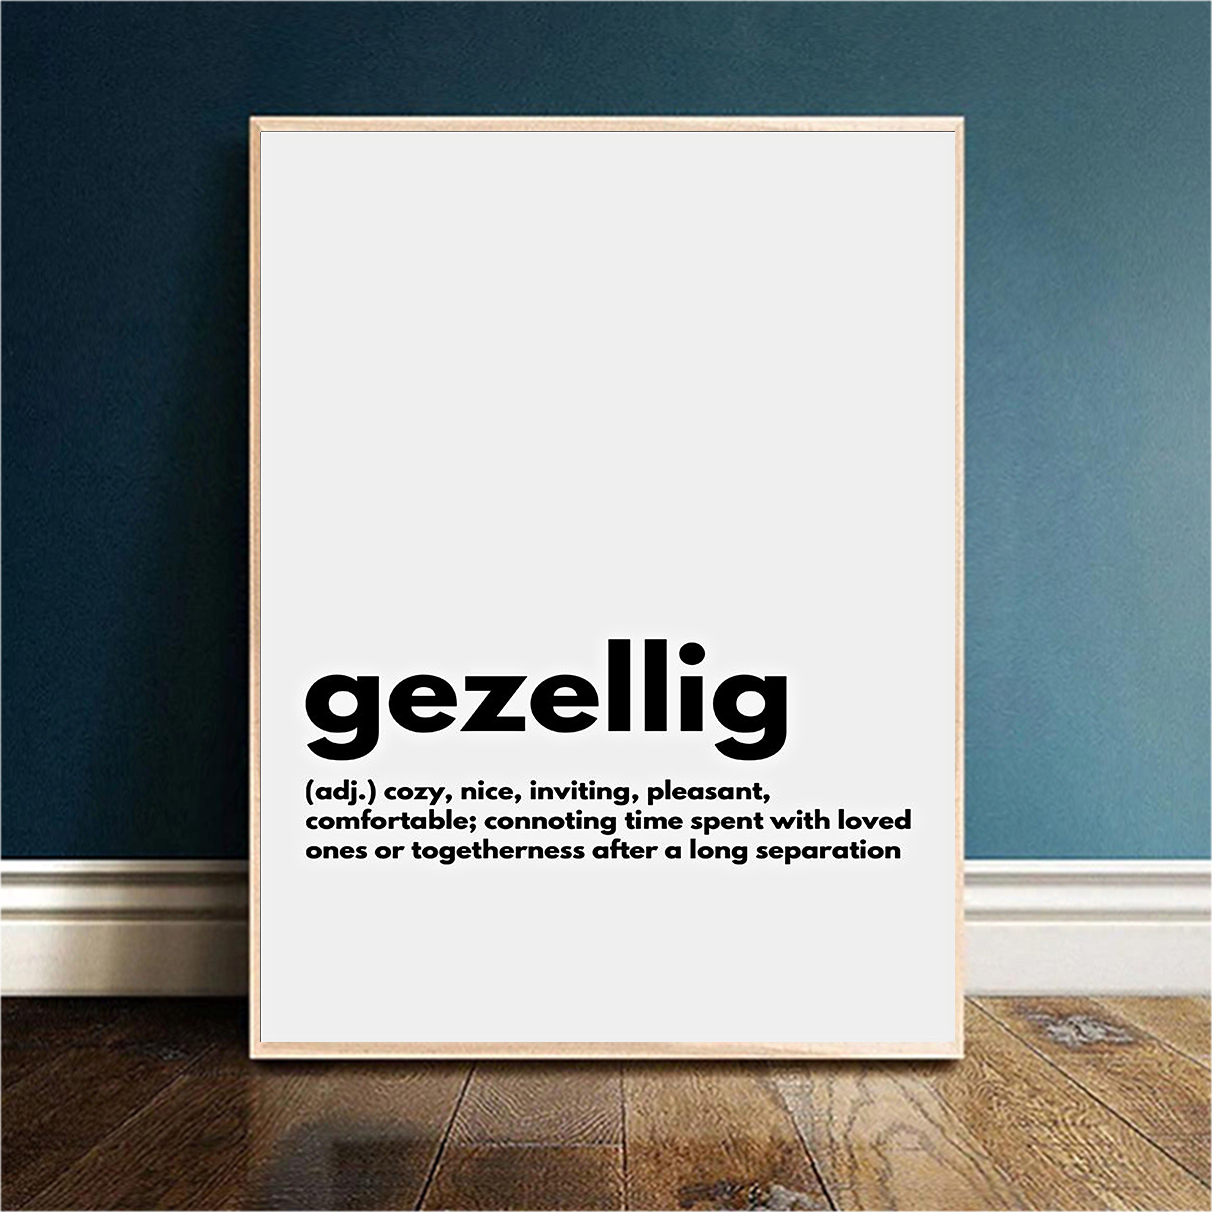 Gezellig definition cozy nice inviting poster A2